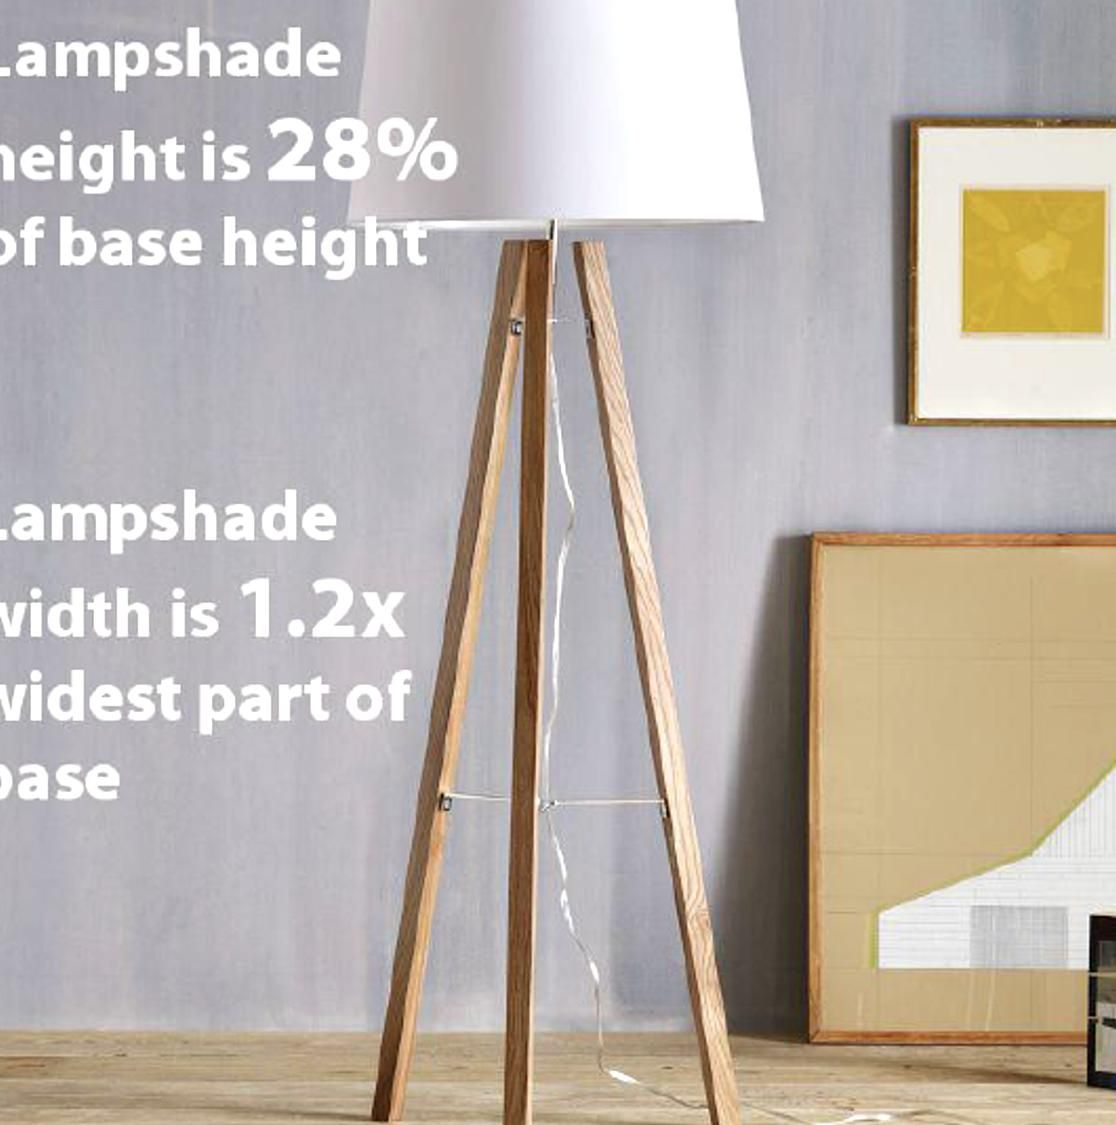 How do you really know if the lampshade fits your lamp? We